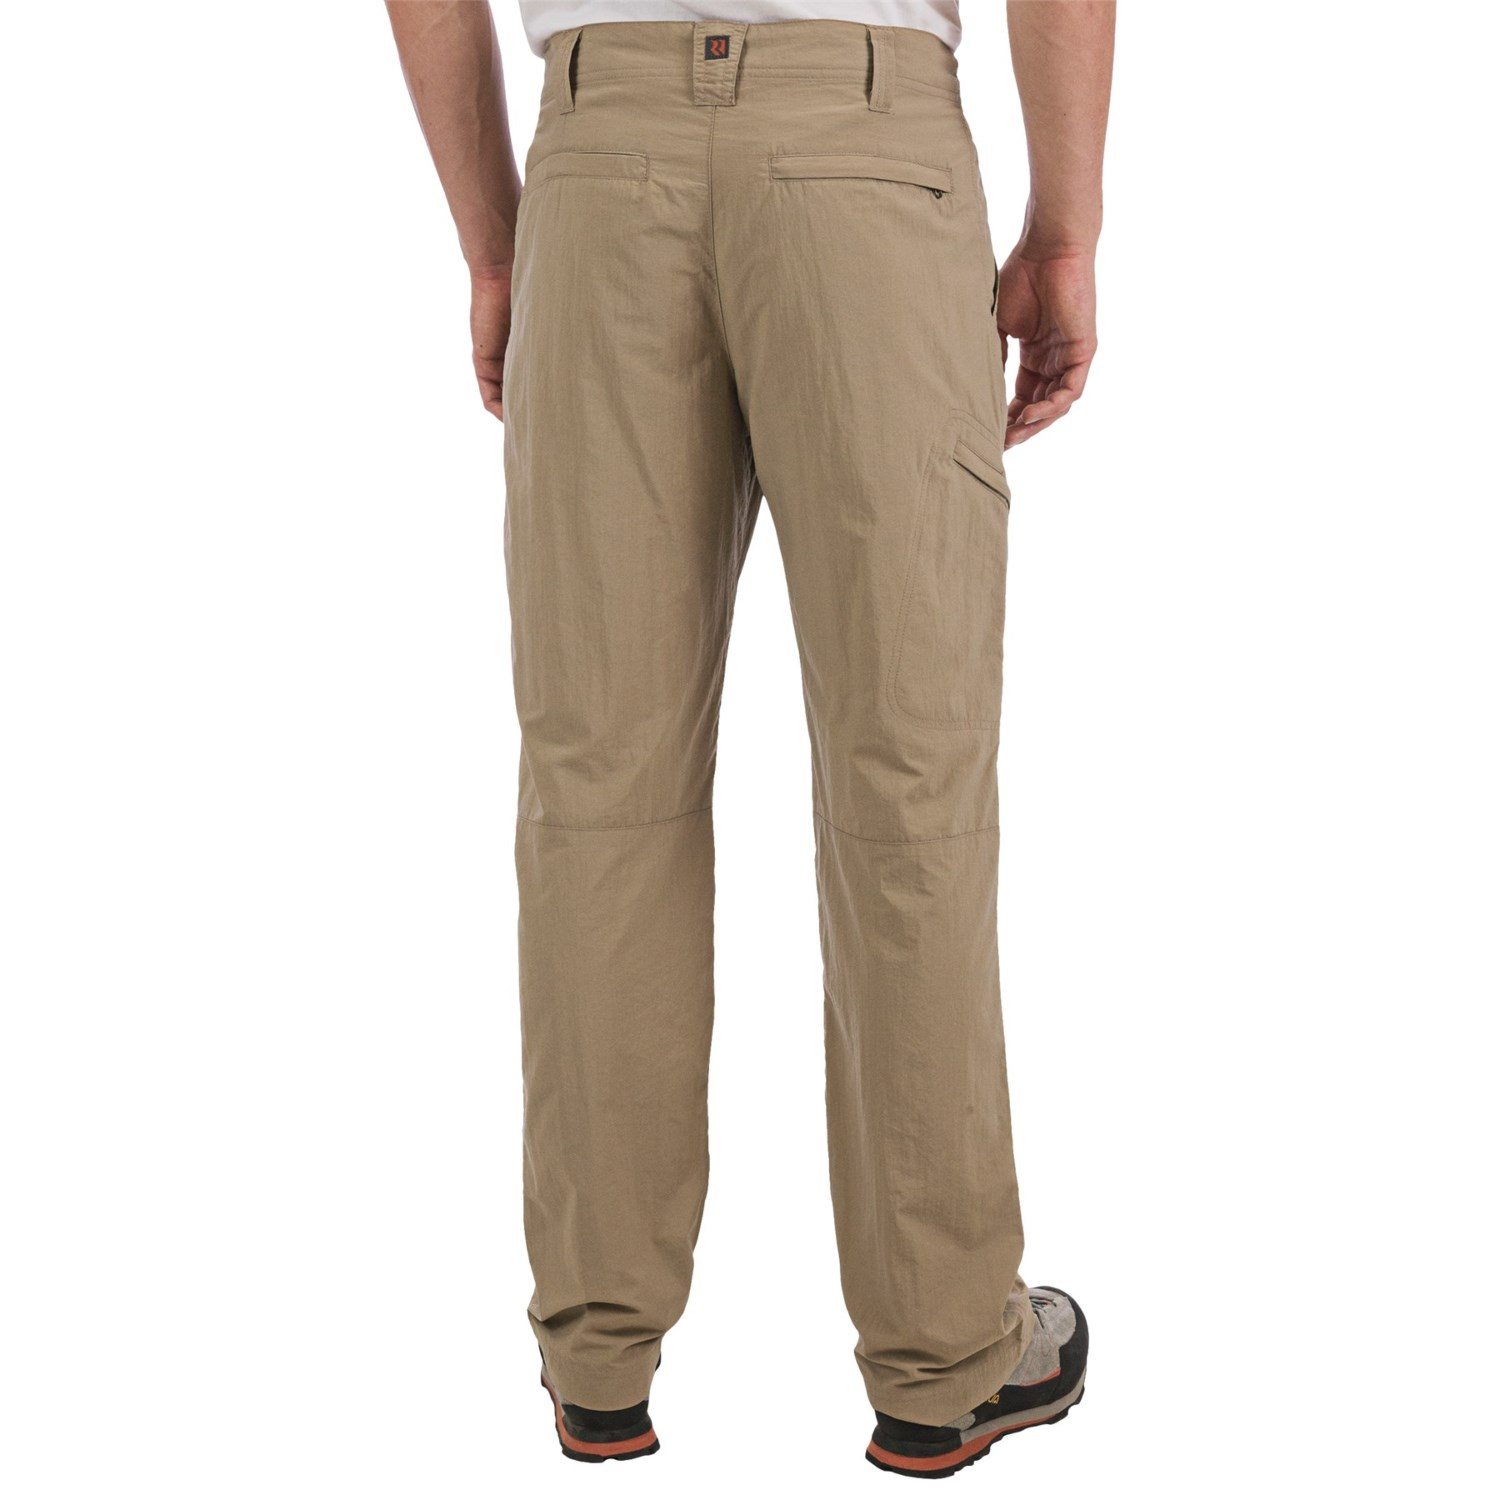 Shop eBay for great deals on M Nylon Pants for Men. You'll find new or used products in M Nylon Pants for Men on eBay. Free shipping on selected items.